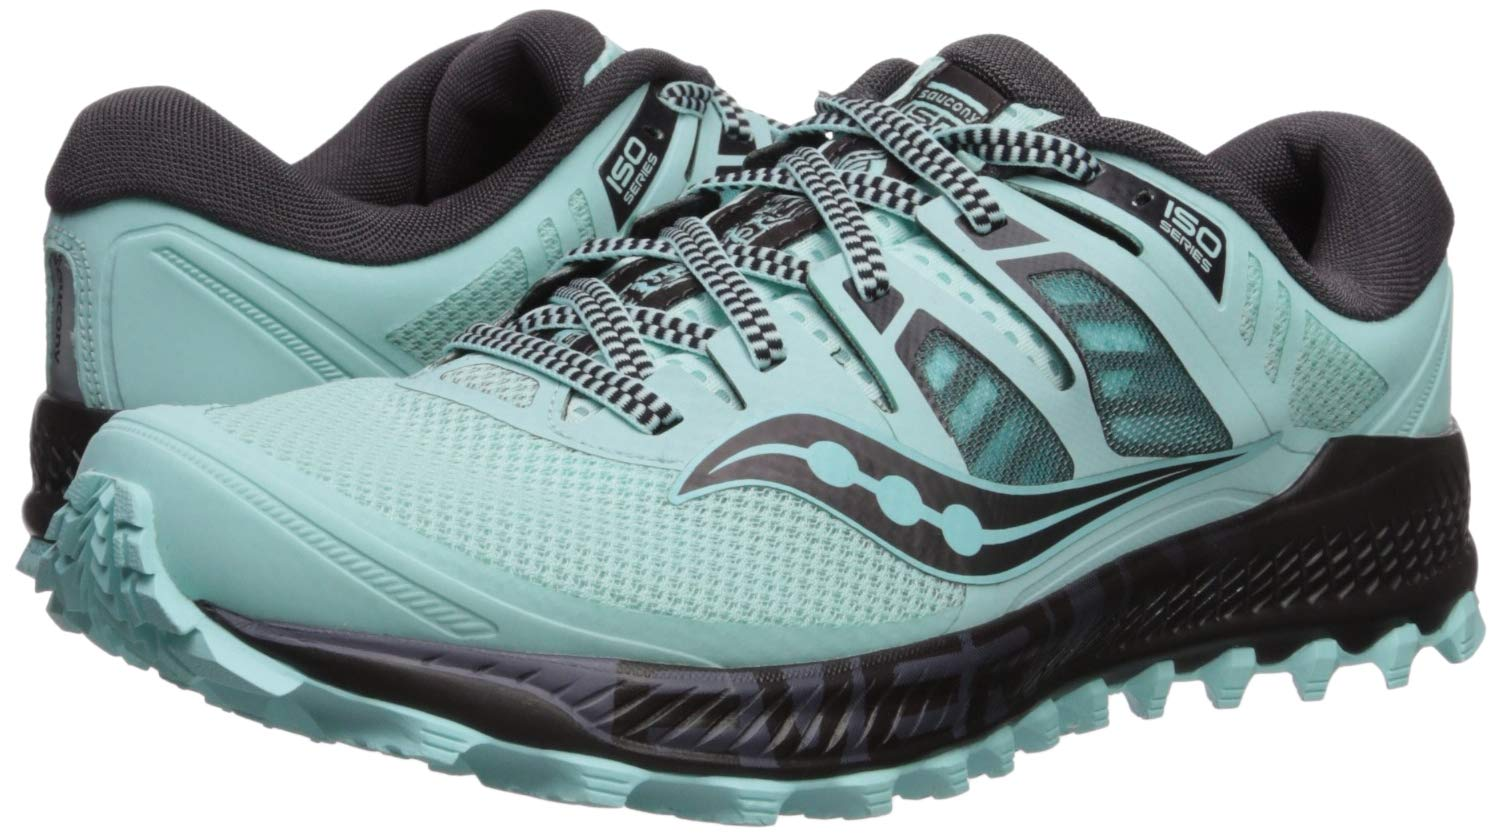 Saucony Women's Peregrine ISO Trail Running Shoe, Aqua/Grey, 5 M US by Saucony (Image #6)